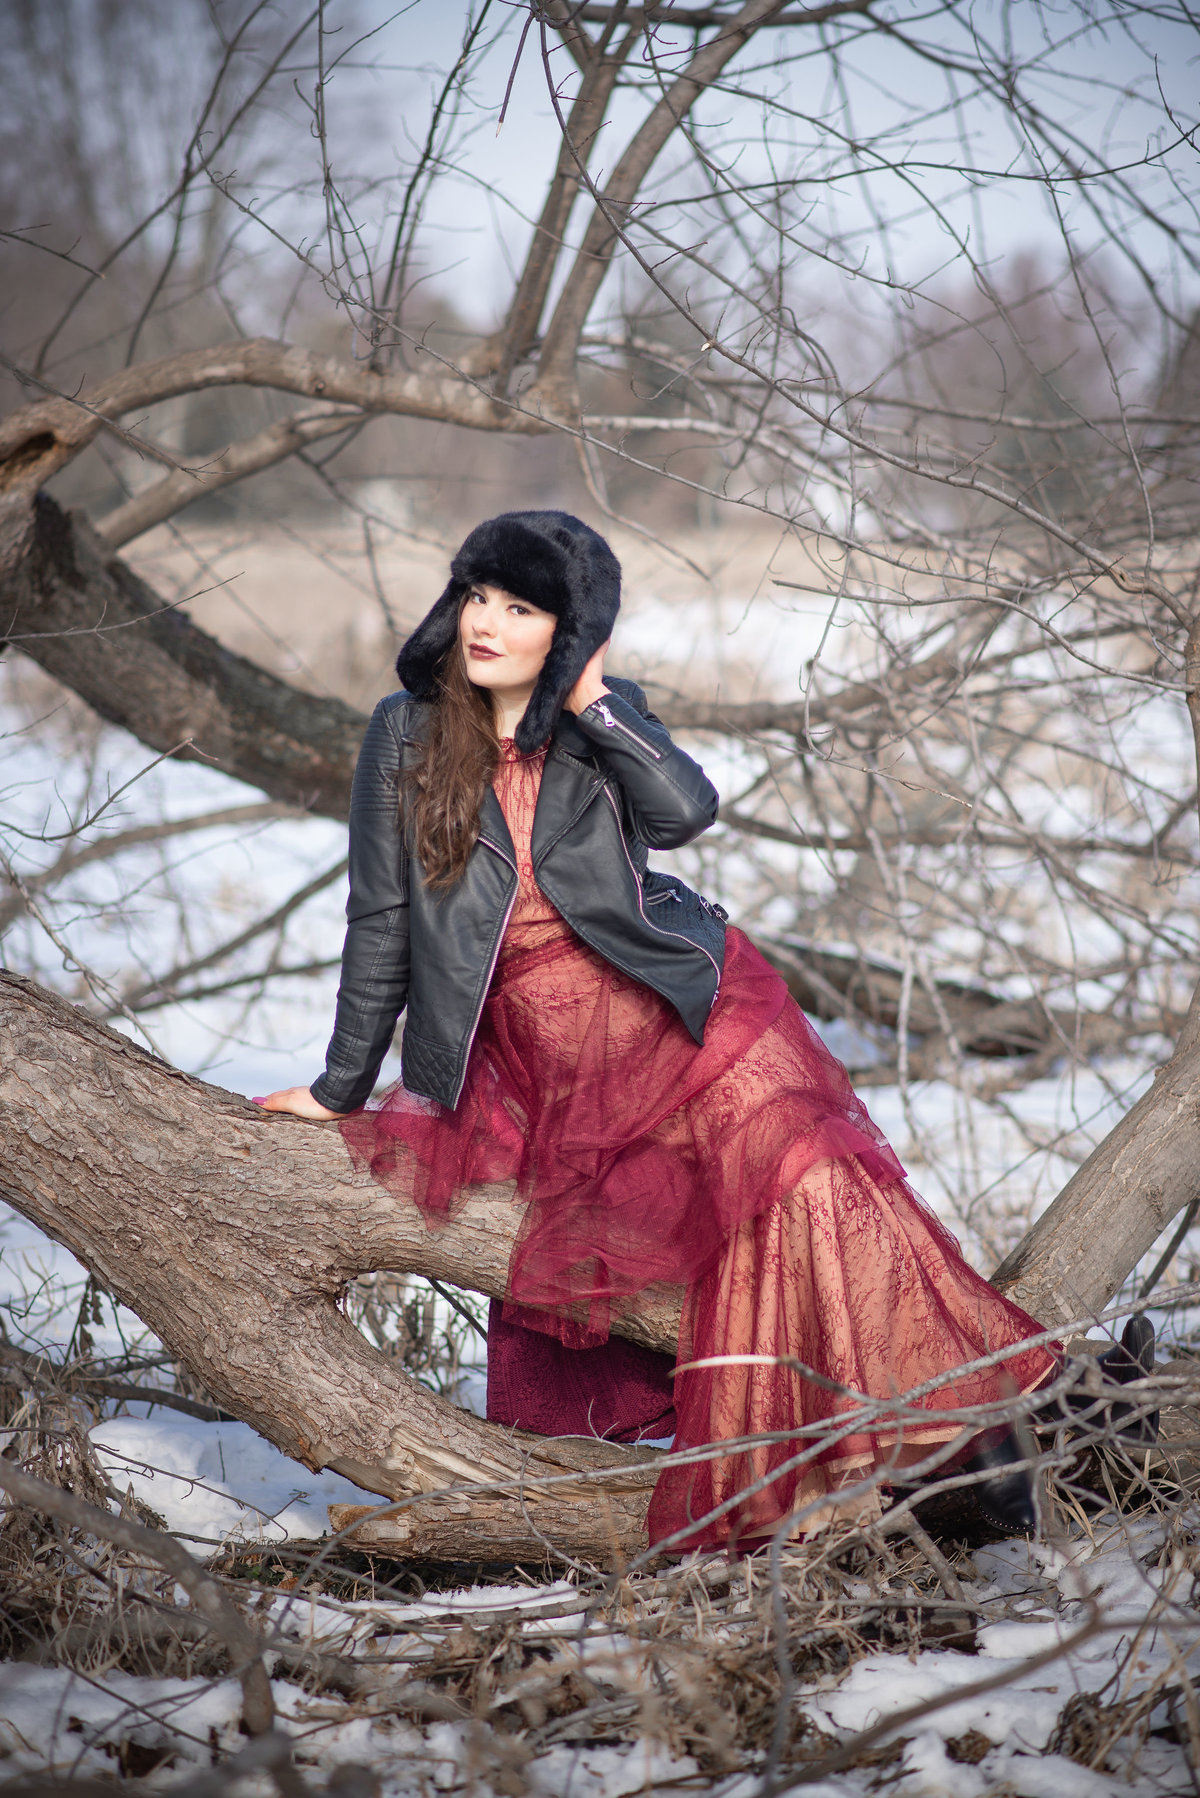 Senior Session Girl in Winter in Woods